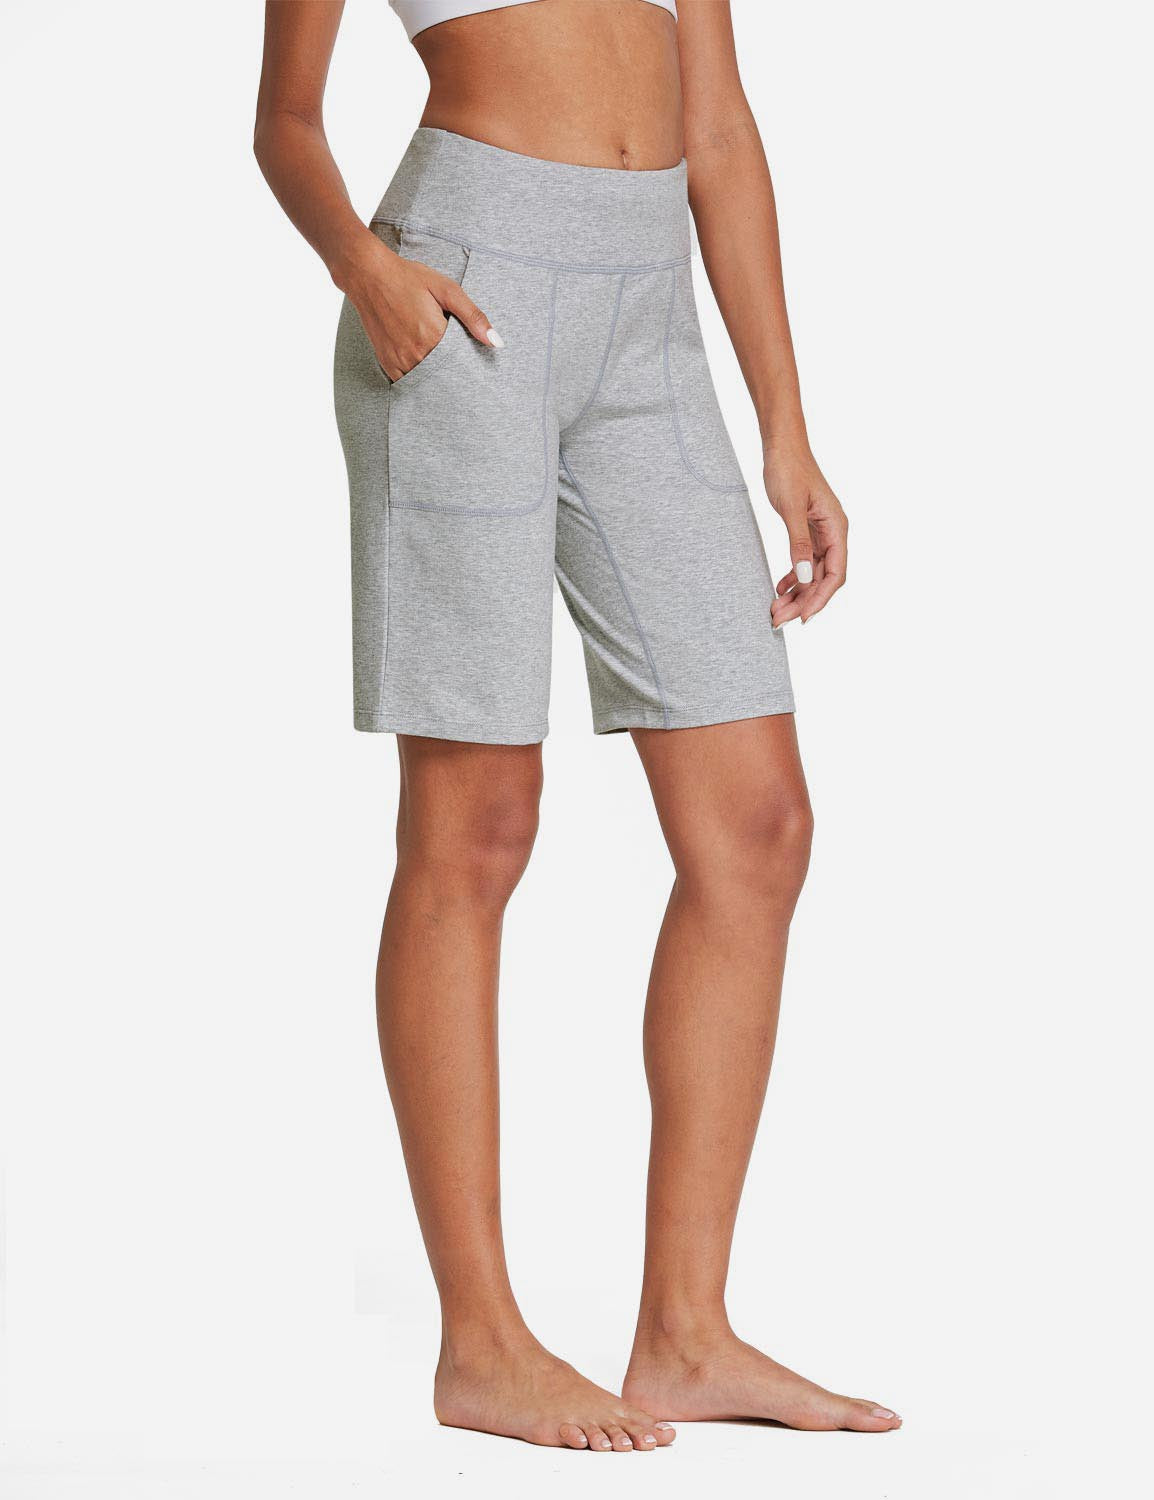 Baleaf Womens Mid Rise Tummy Control Pocketed Lounge Bermuda Shorts Baleaf Womens Mid Rise Tummy Control Pocketed Lounge Bermuda Shorts Light gray  side